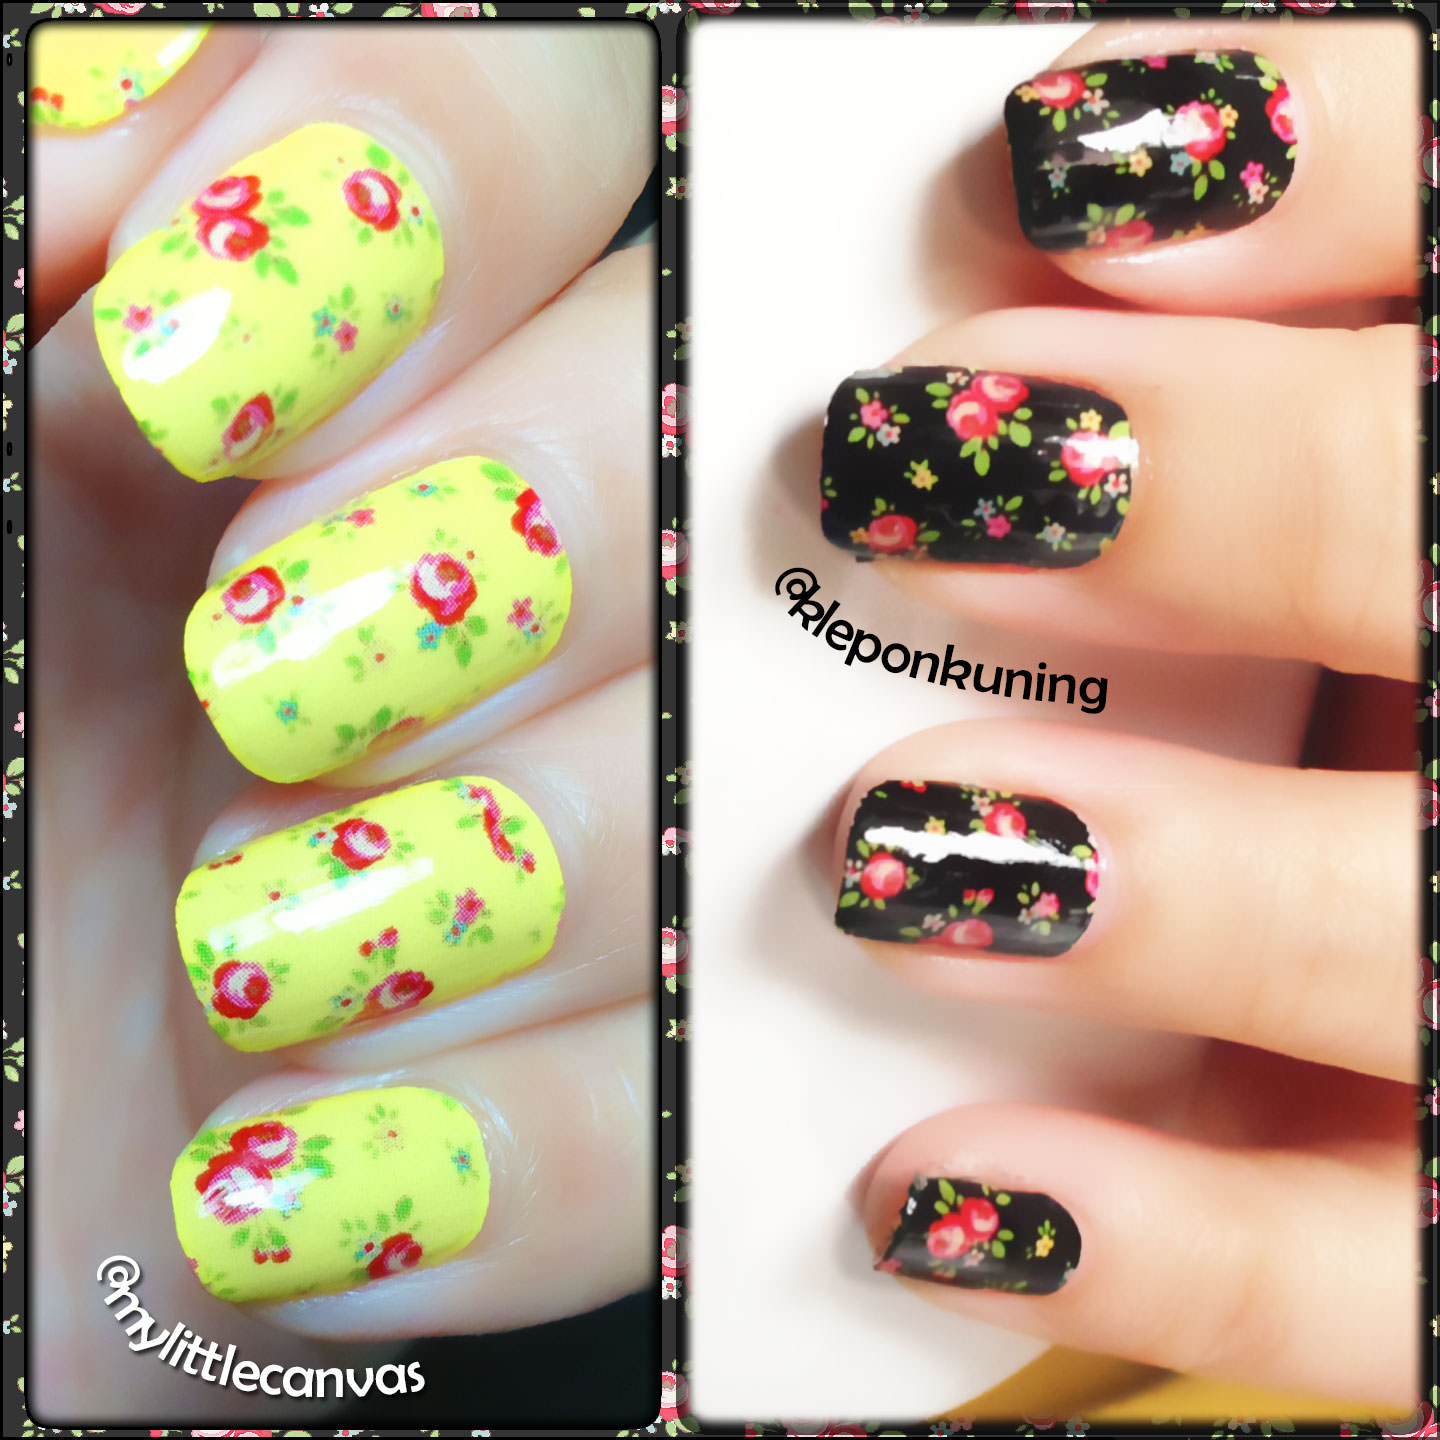 Mylittlecanvas vintage floral nail art were crazy about this vintage floral designs so i am going to flood this post with pictures of them prinsesfo Image collections